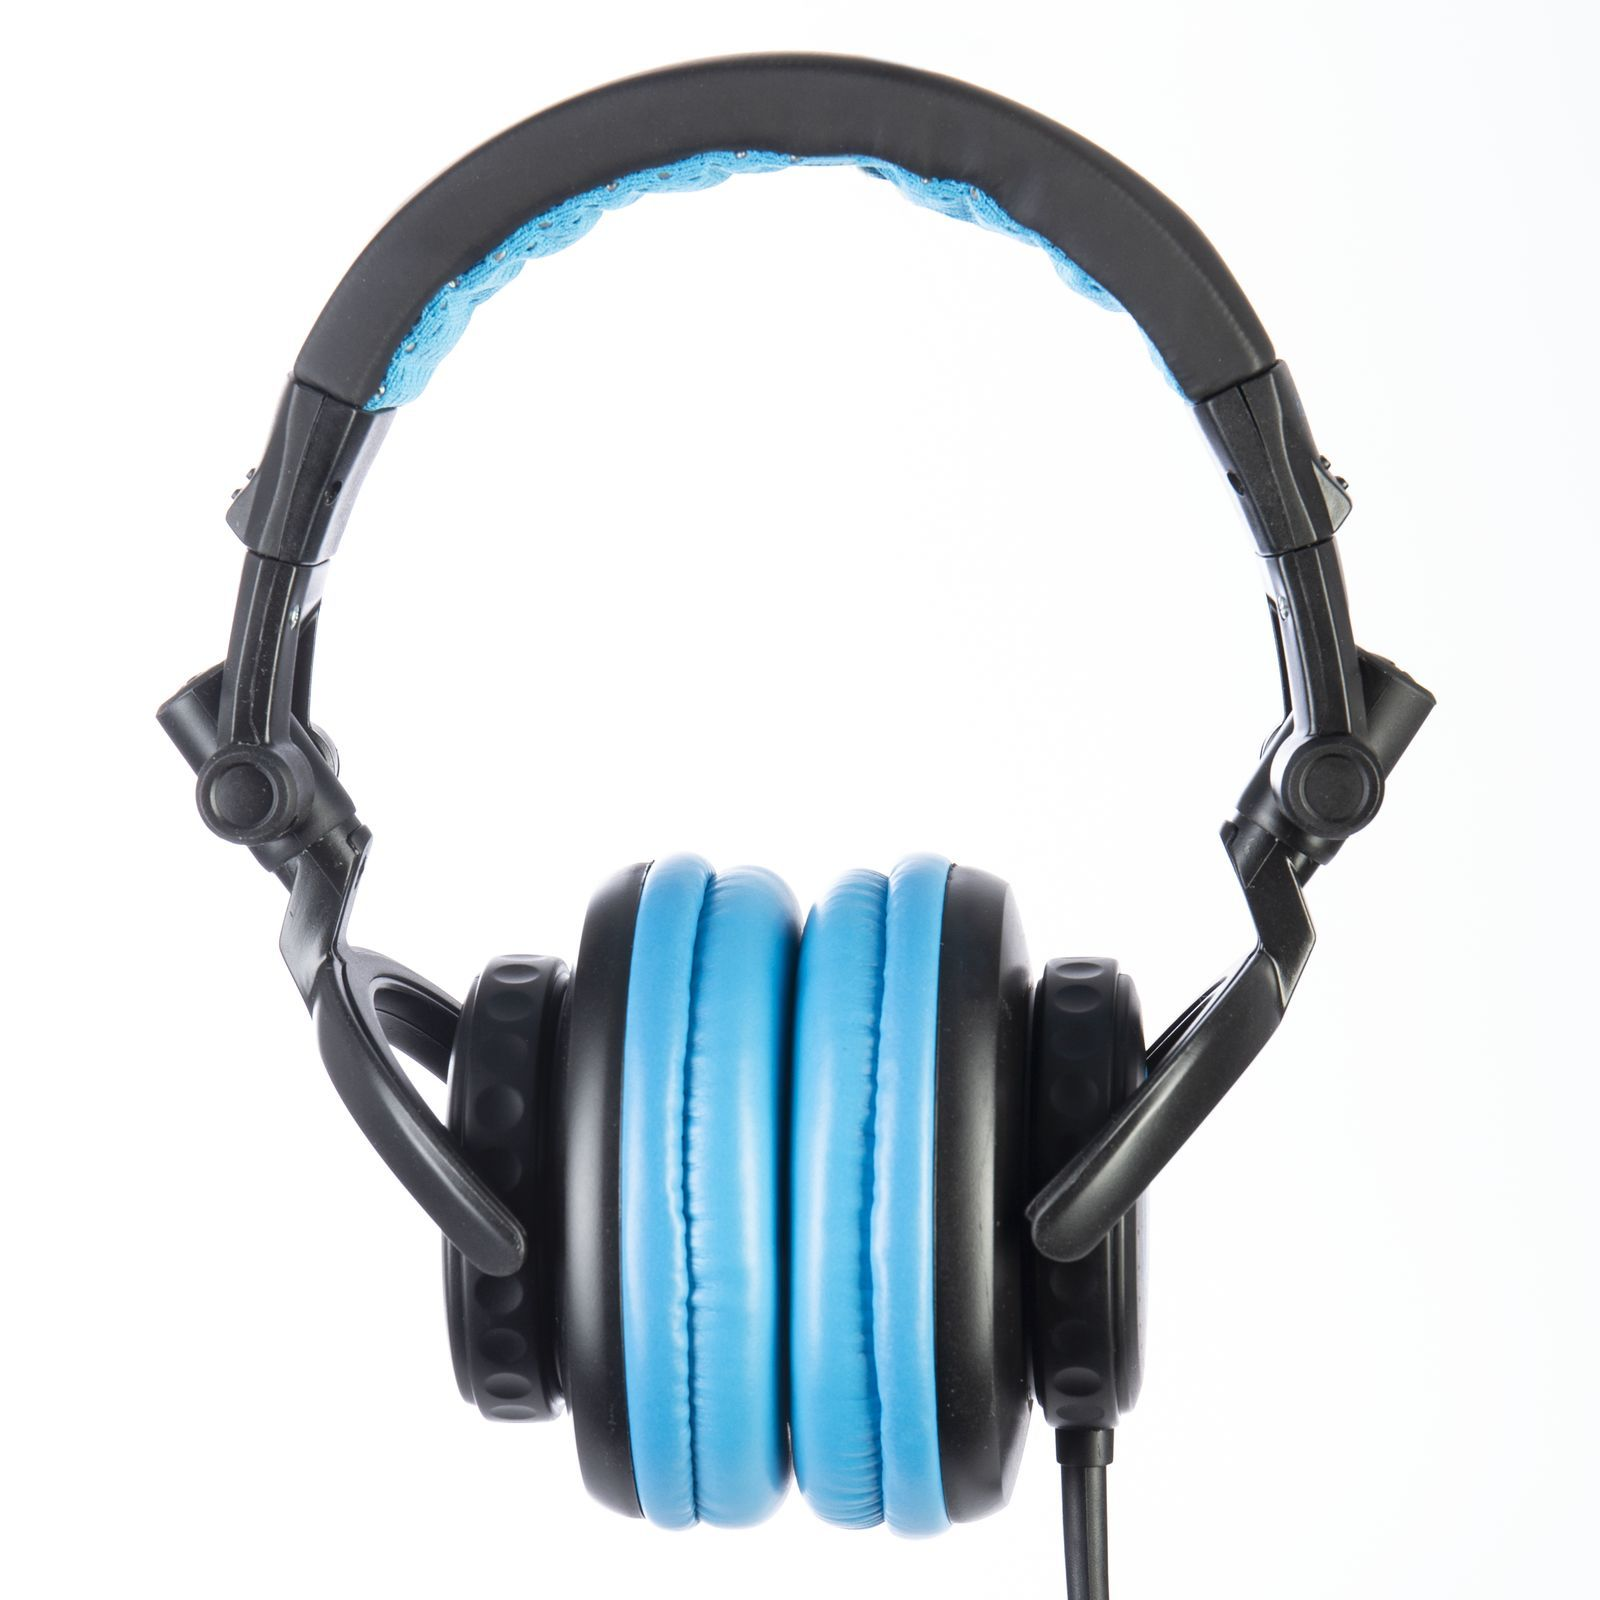 Fame audio hD-1000 Blue DJ Headphones Black And Blue, 3m Cable Изображение товара